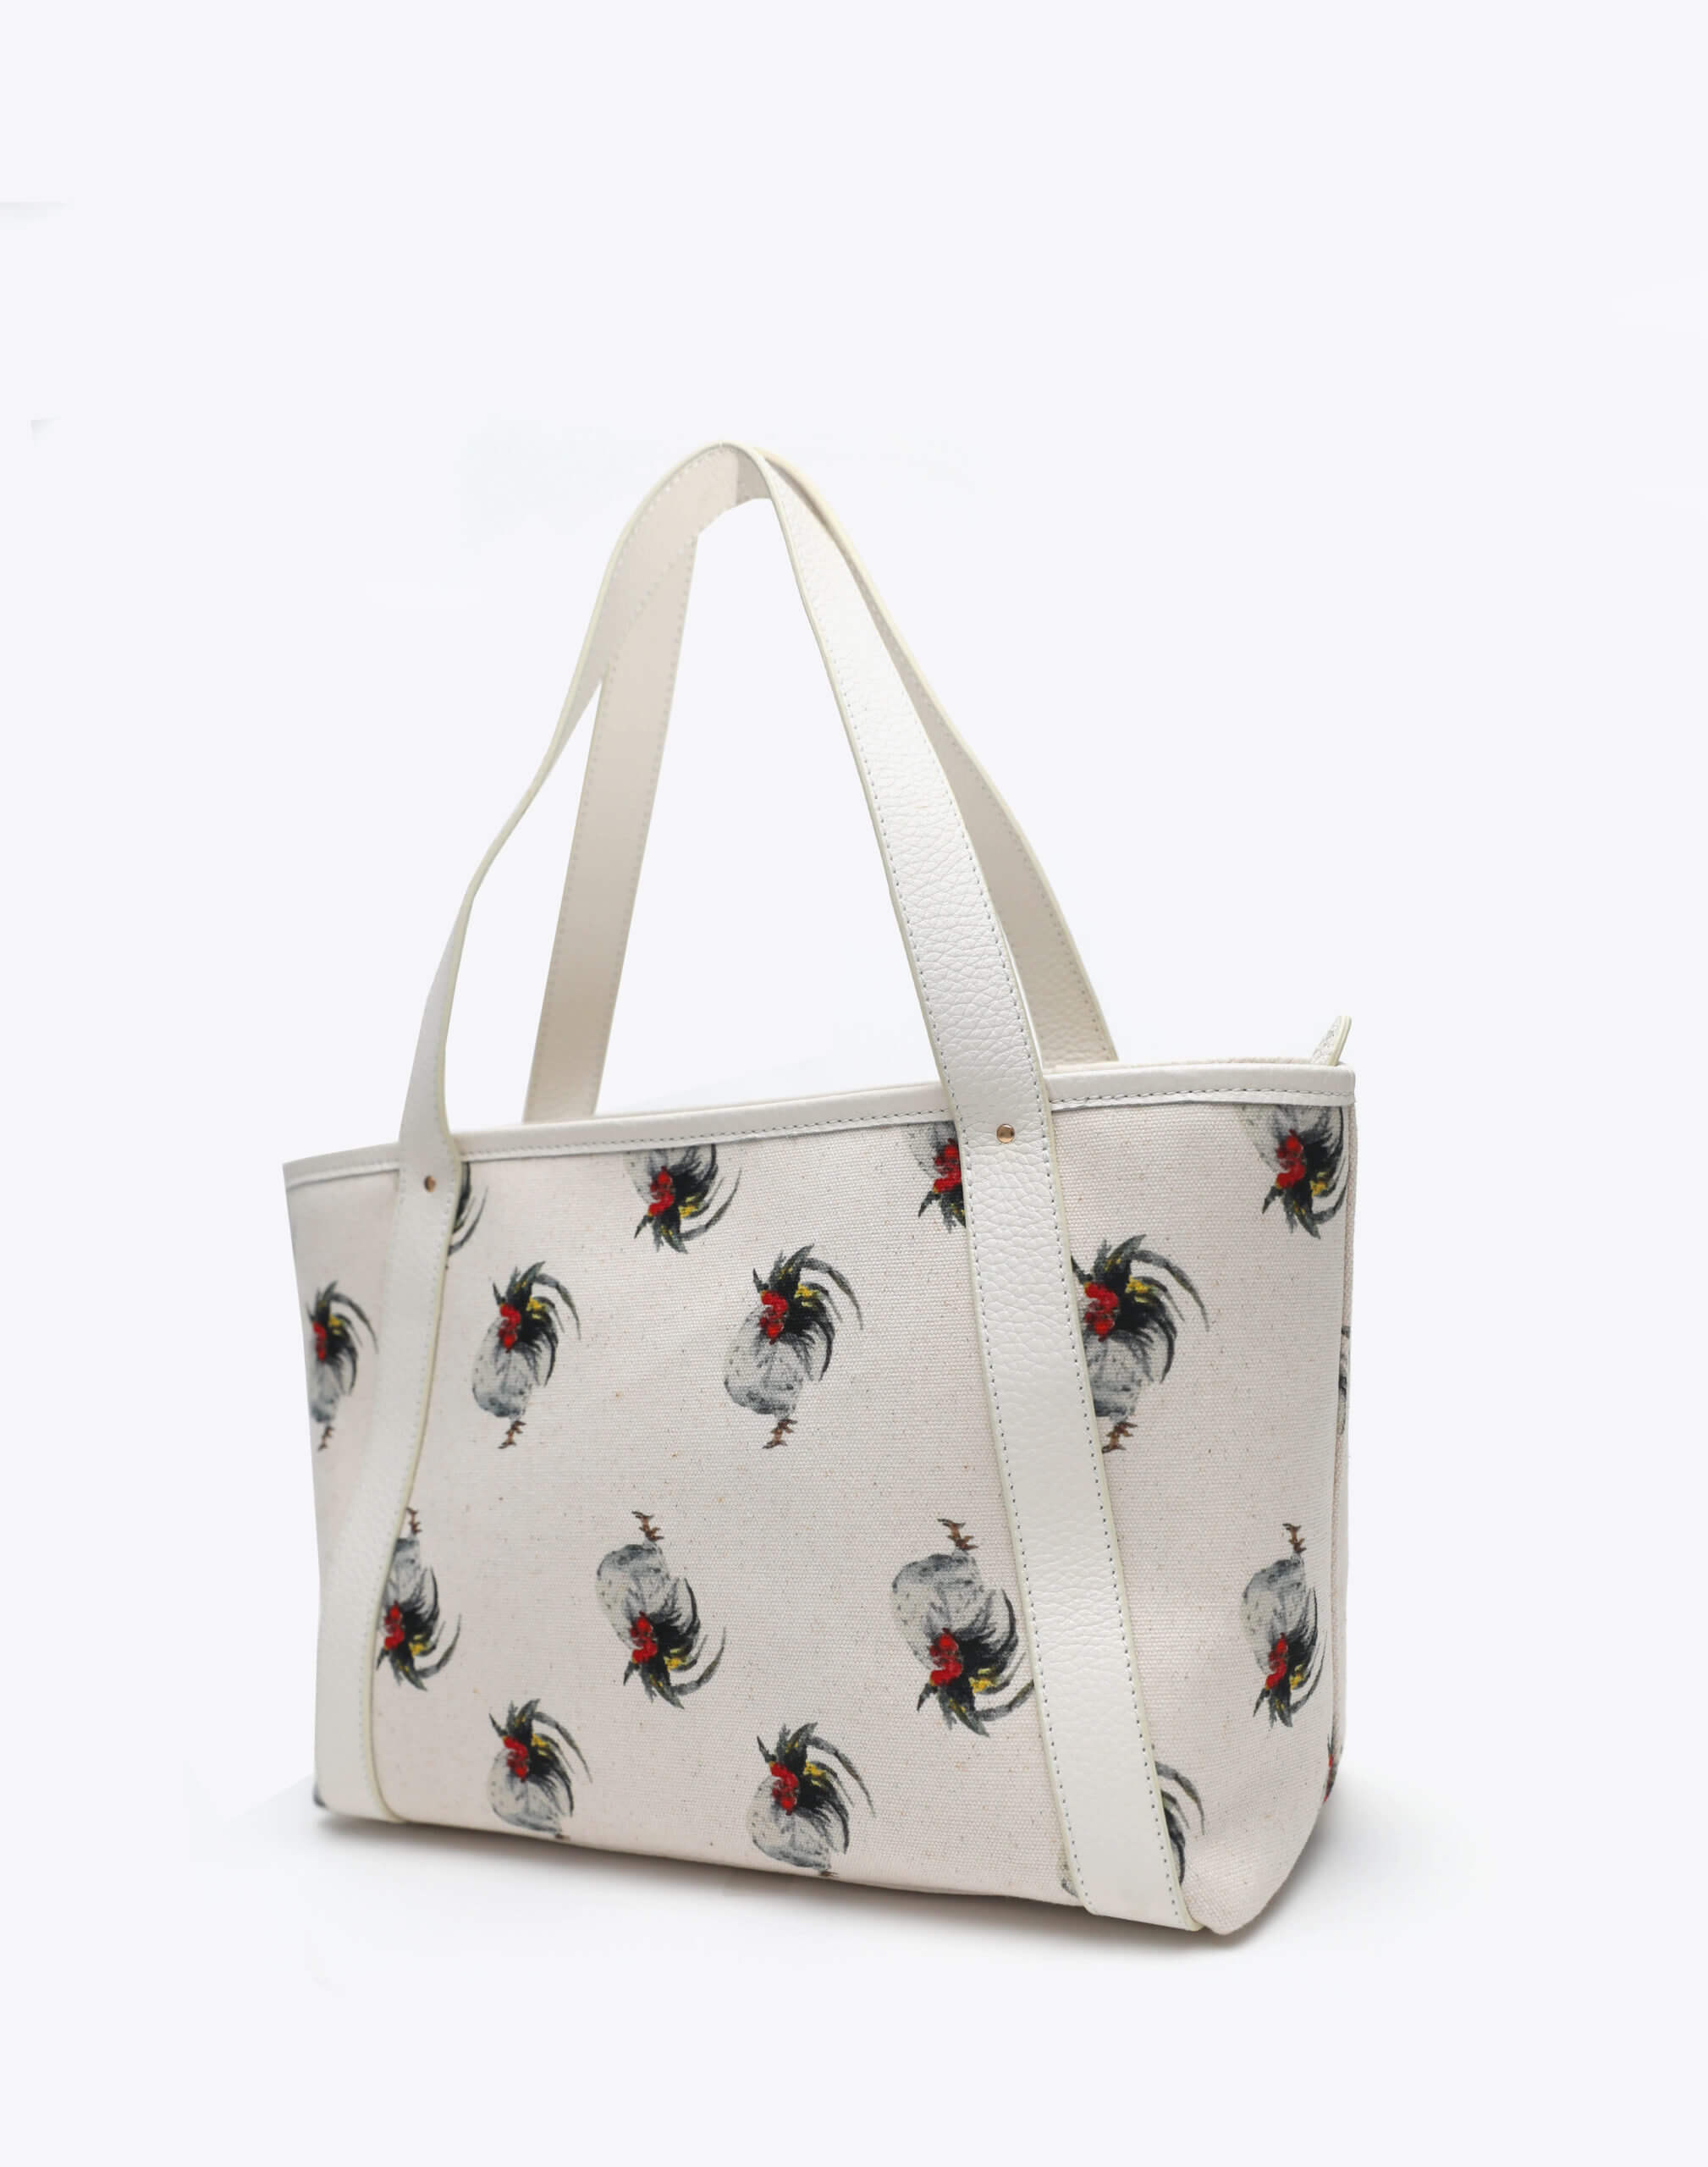 Neely and Chloe Chicken Print Travel Tote Angle View White